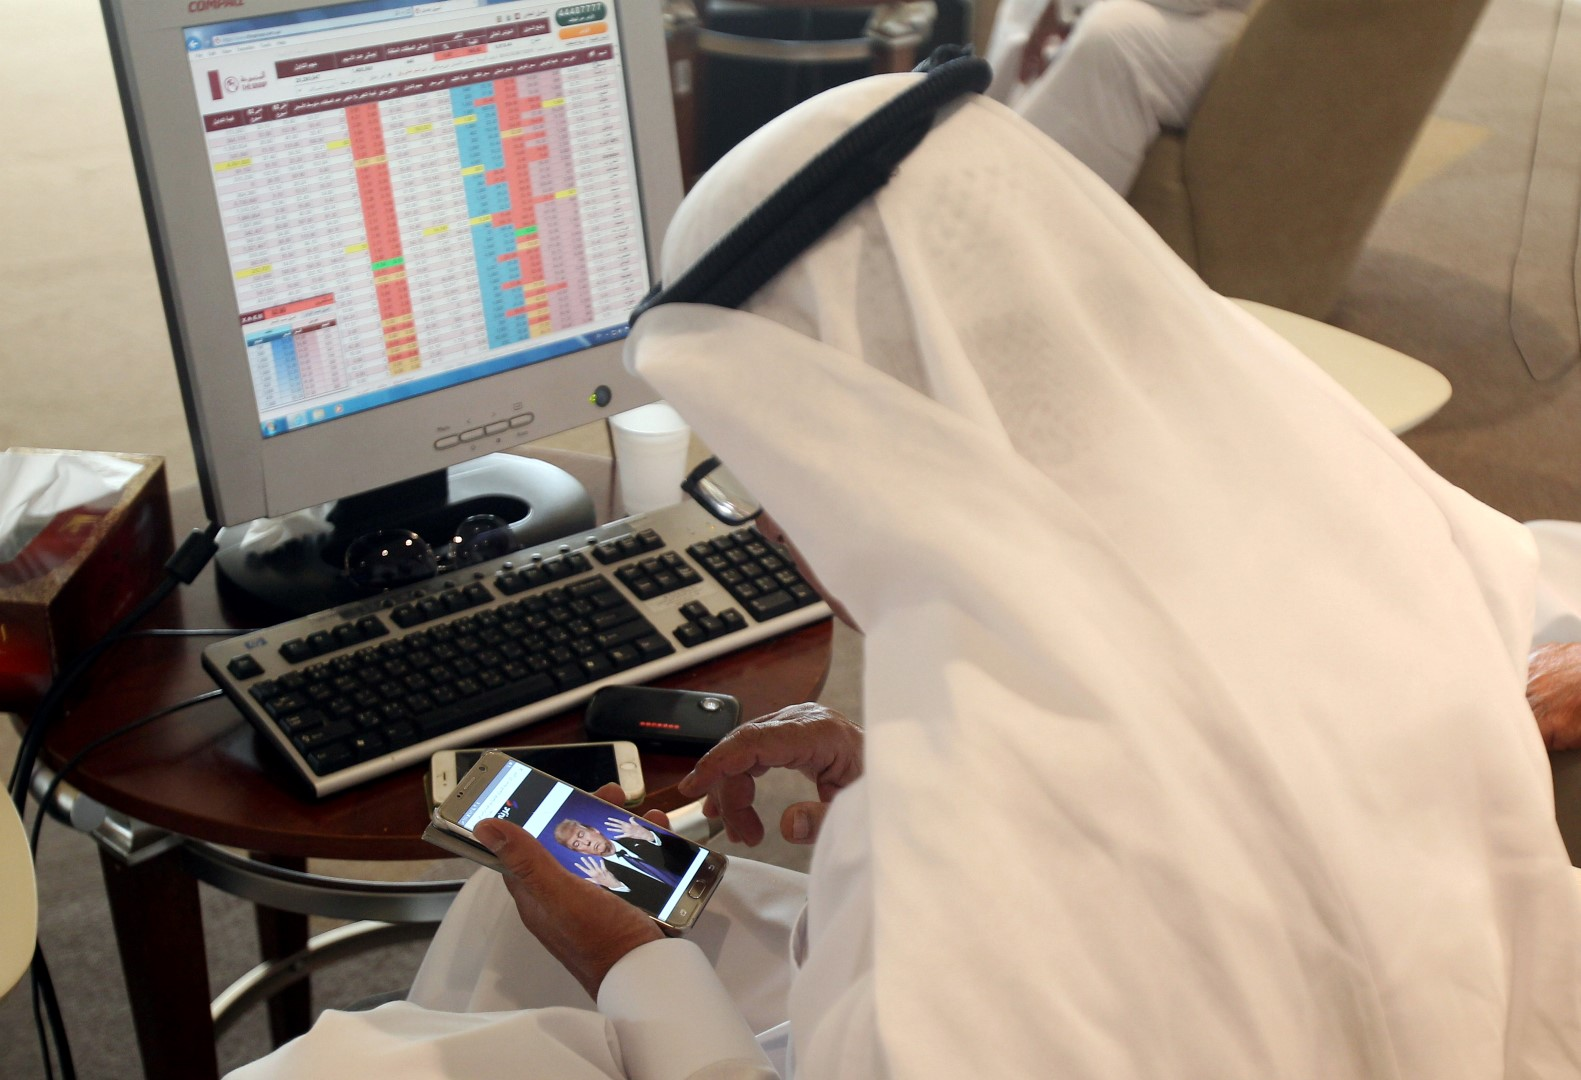 A trader uses his smartphone to follow news of U.S. presidential elections as he monitors a screen displaying stock information at Qatar Stock Exchange in Doha, Qatar November 9, 2016. REUTERS/Naseem Zeitoon  - RTX2SQ7Q